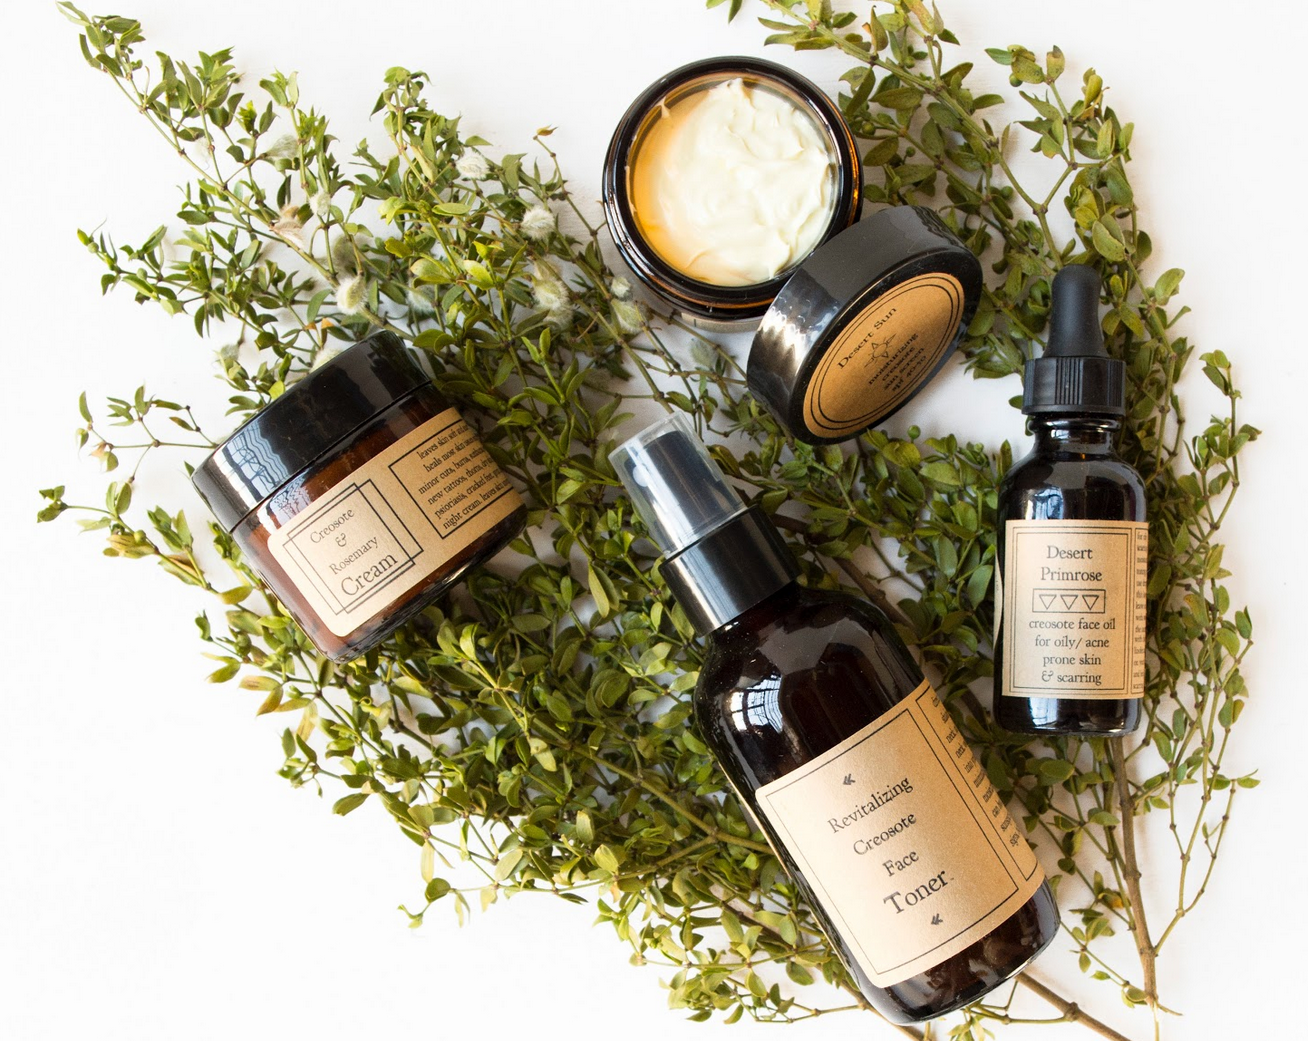 Sonoran Rosie   Handmade, Sustainable, Luxury, Small Batch, Wildcrafted, Cruelty Free, Organic, Herbal Hair & Skincare Made From Plants of the Sonoran Desert